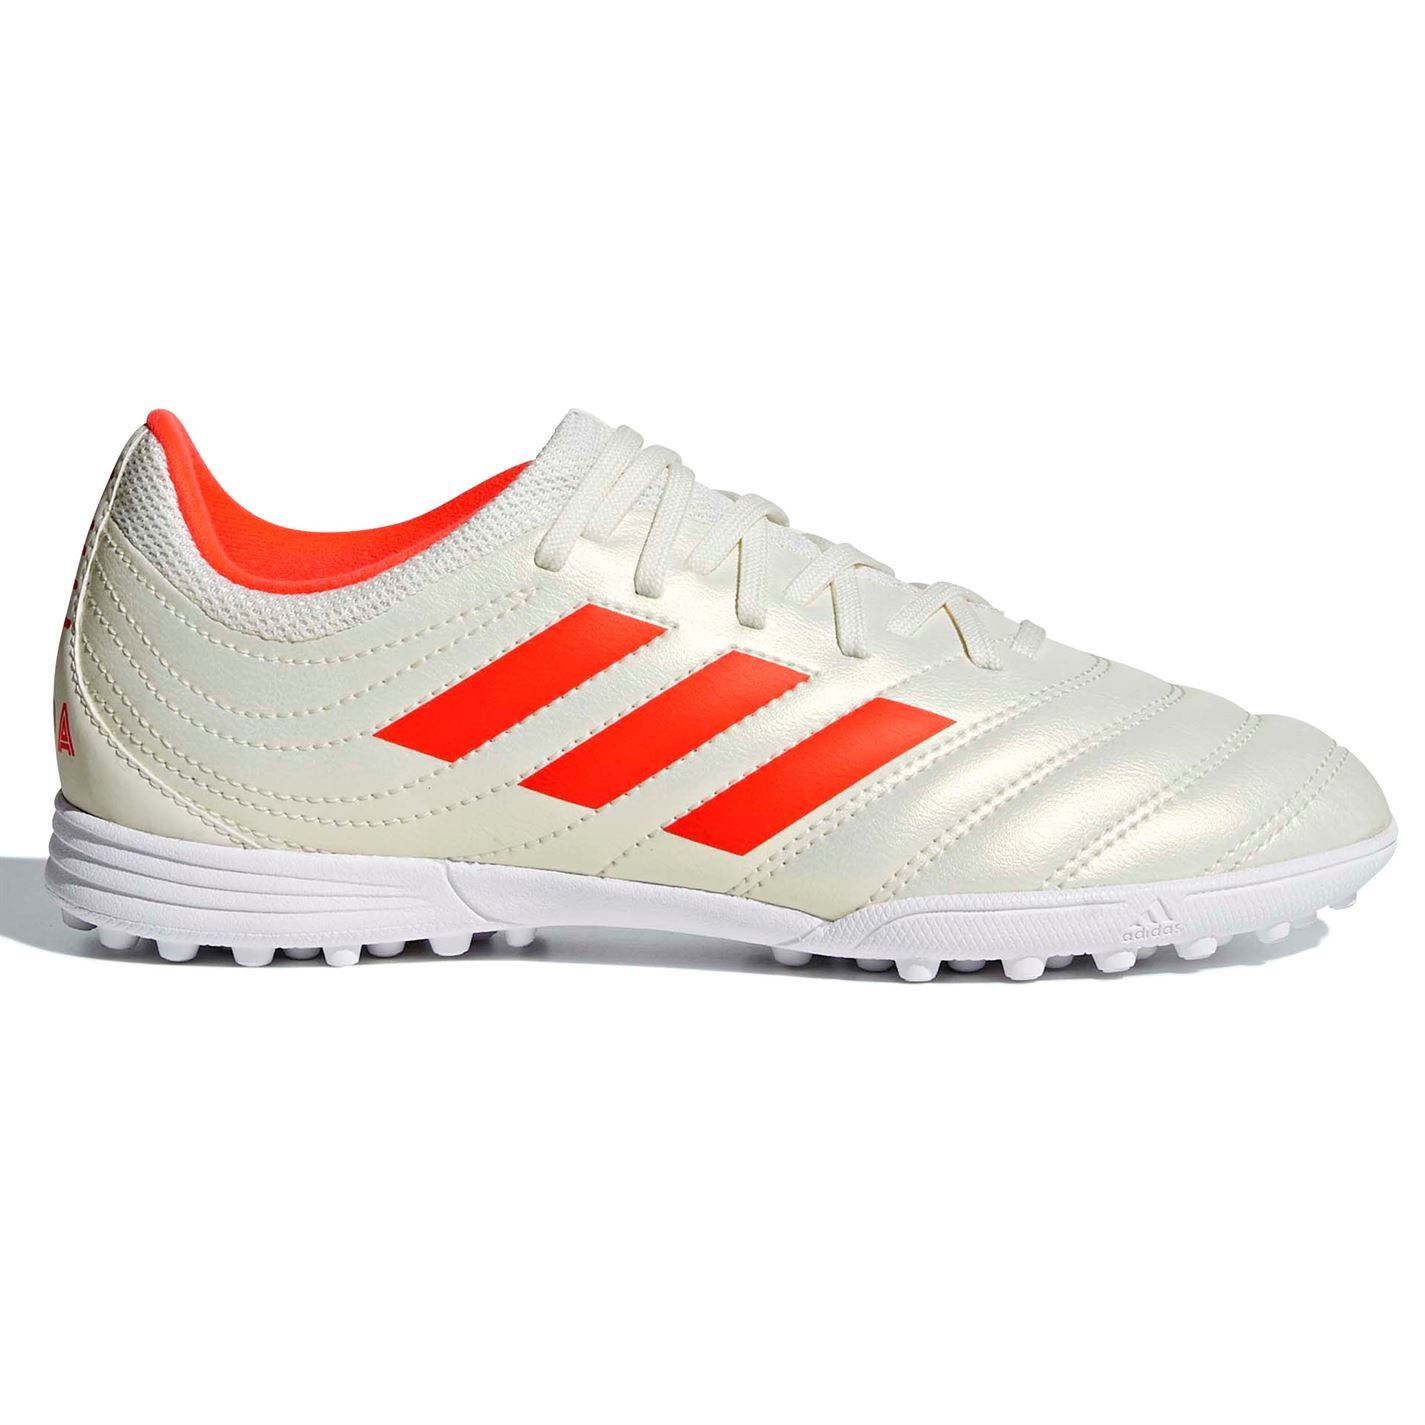 best service 86743 fc8dc ... adidas Copa 19.3 Astro Turf Football Trainers Juniors White Soccer  Shoes ...